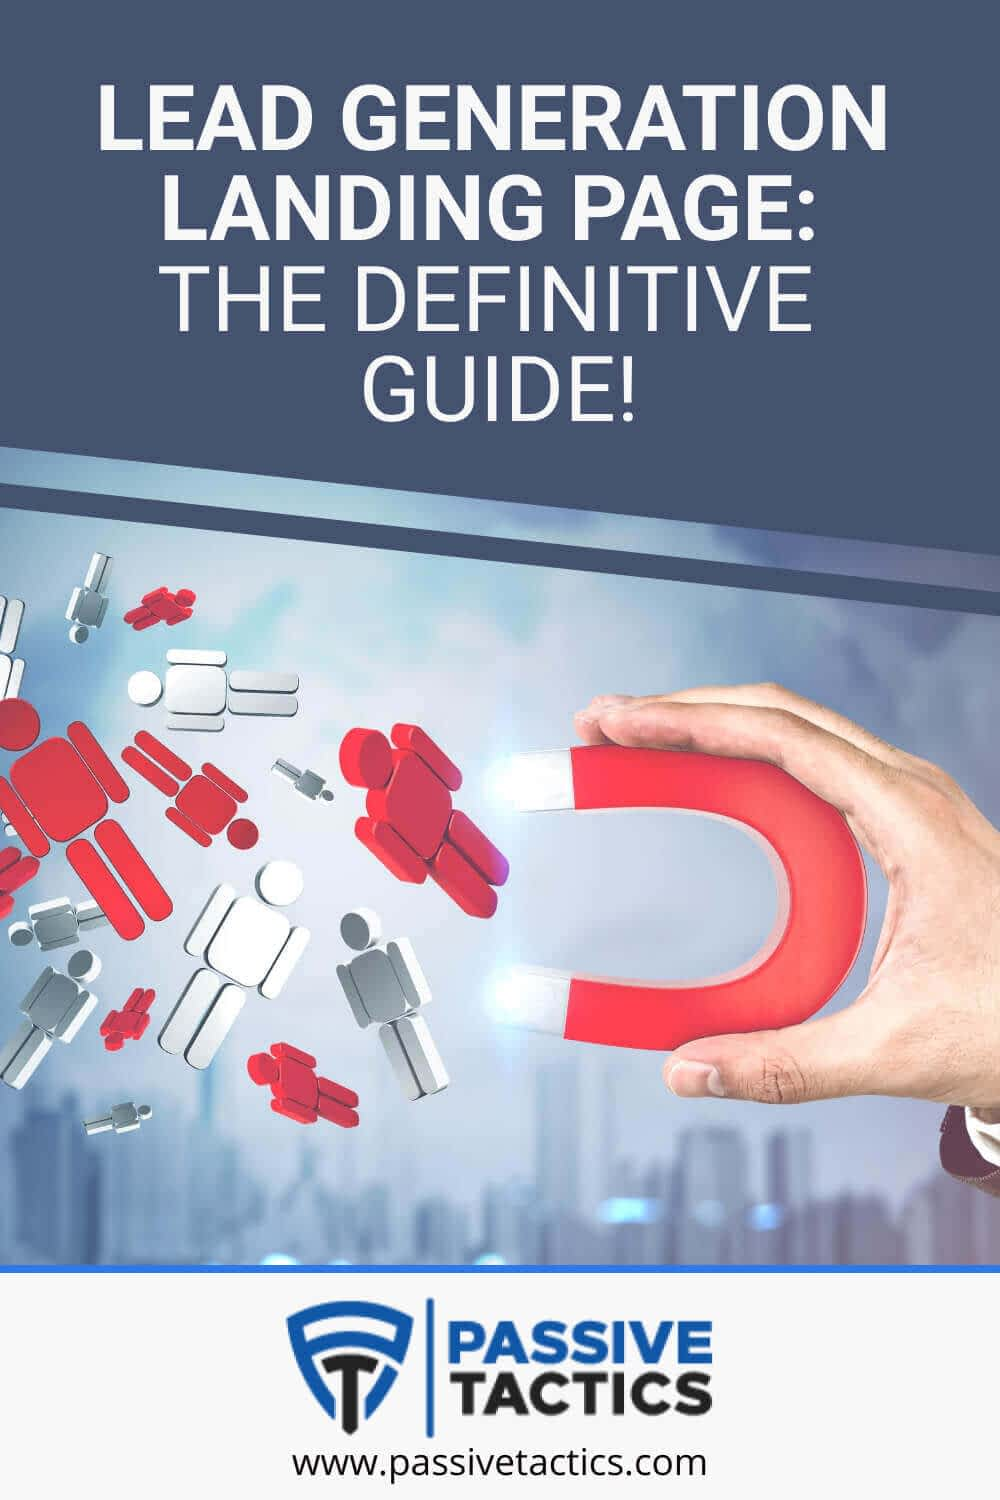 Lead Generation Landing Page: The Definitive Guide!